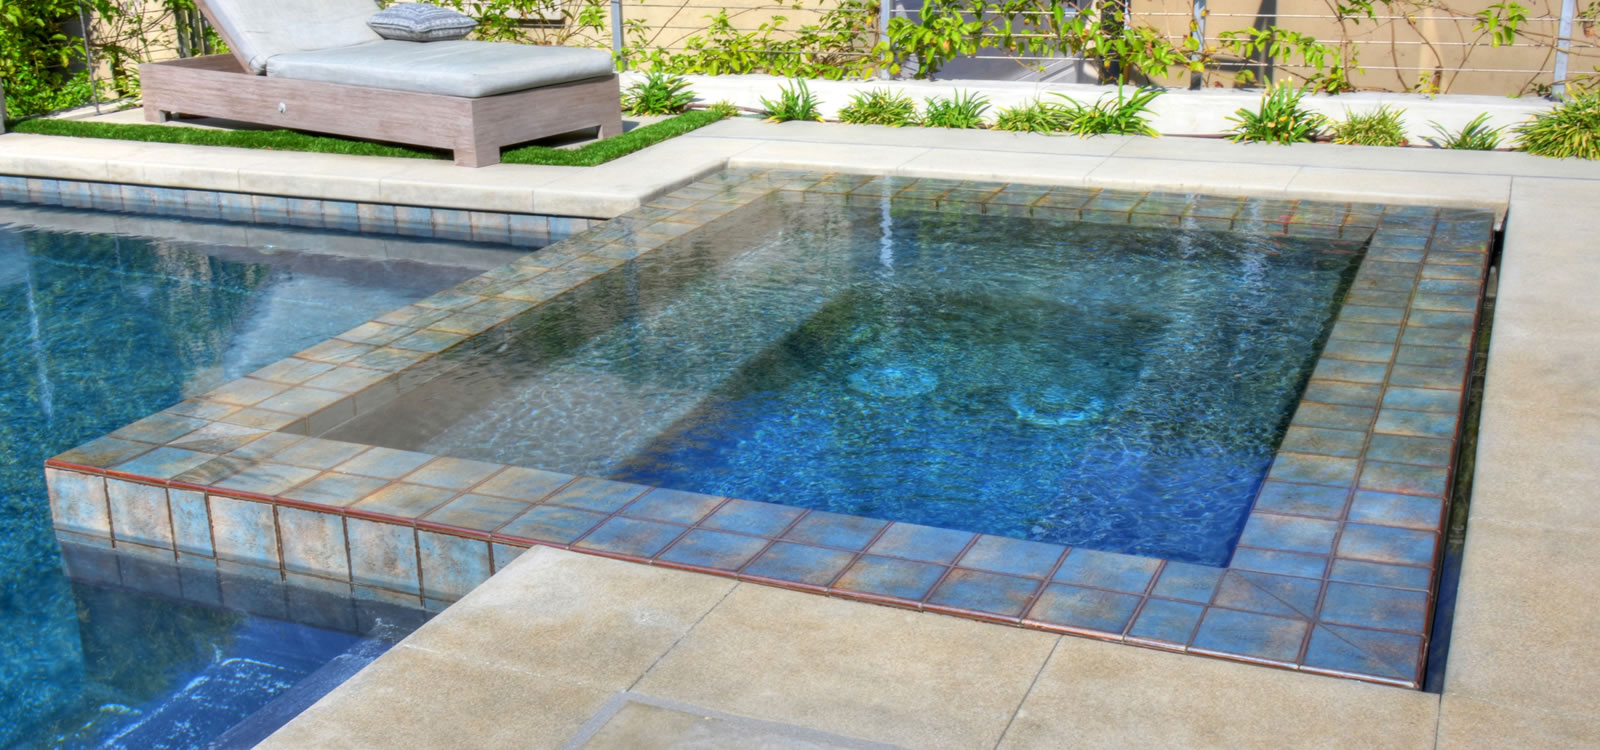 Los angeles outdoor living spaces w pool spa custom for Pool design los angeles